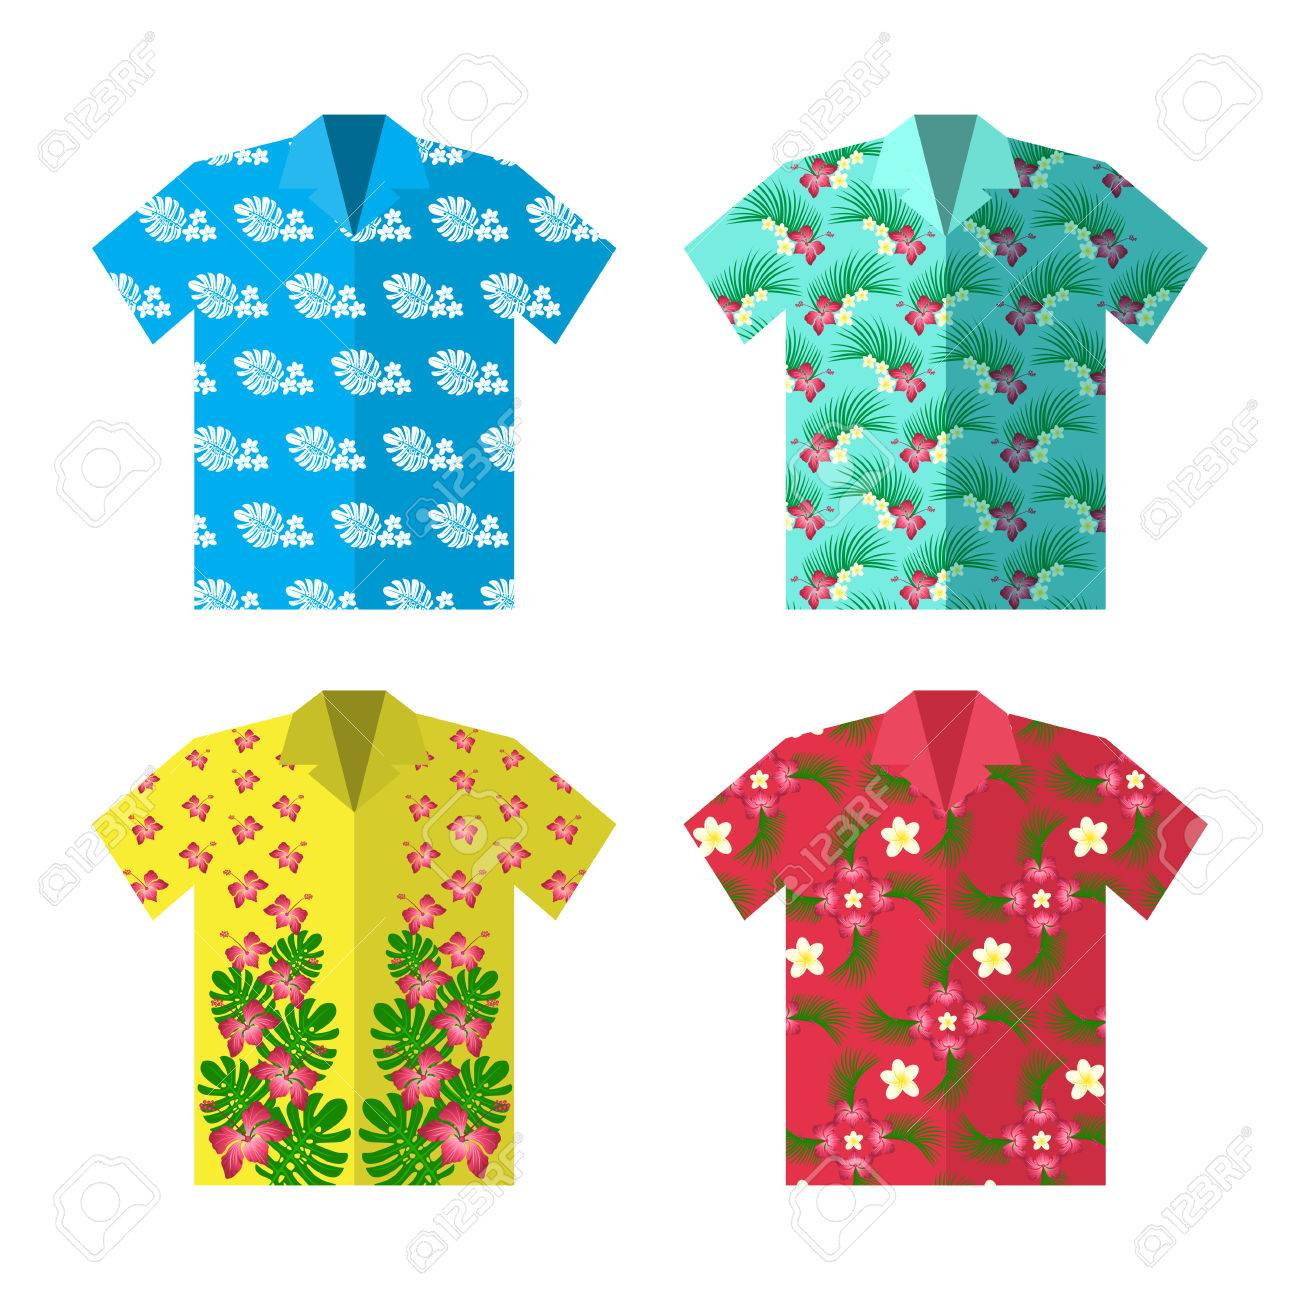 Aloha Hawaiian Shirt For Happy Carefree Vacation Colorful Vector Flat Illustration Stock